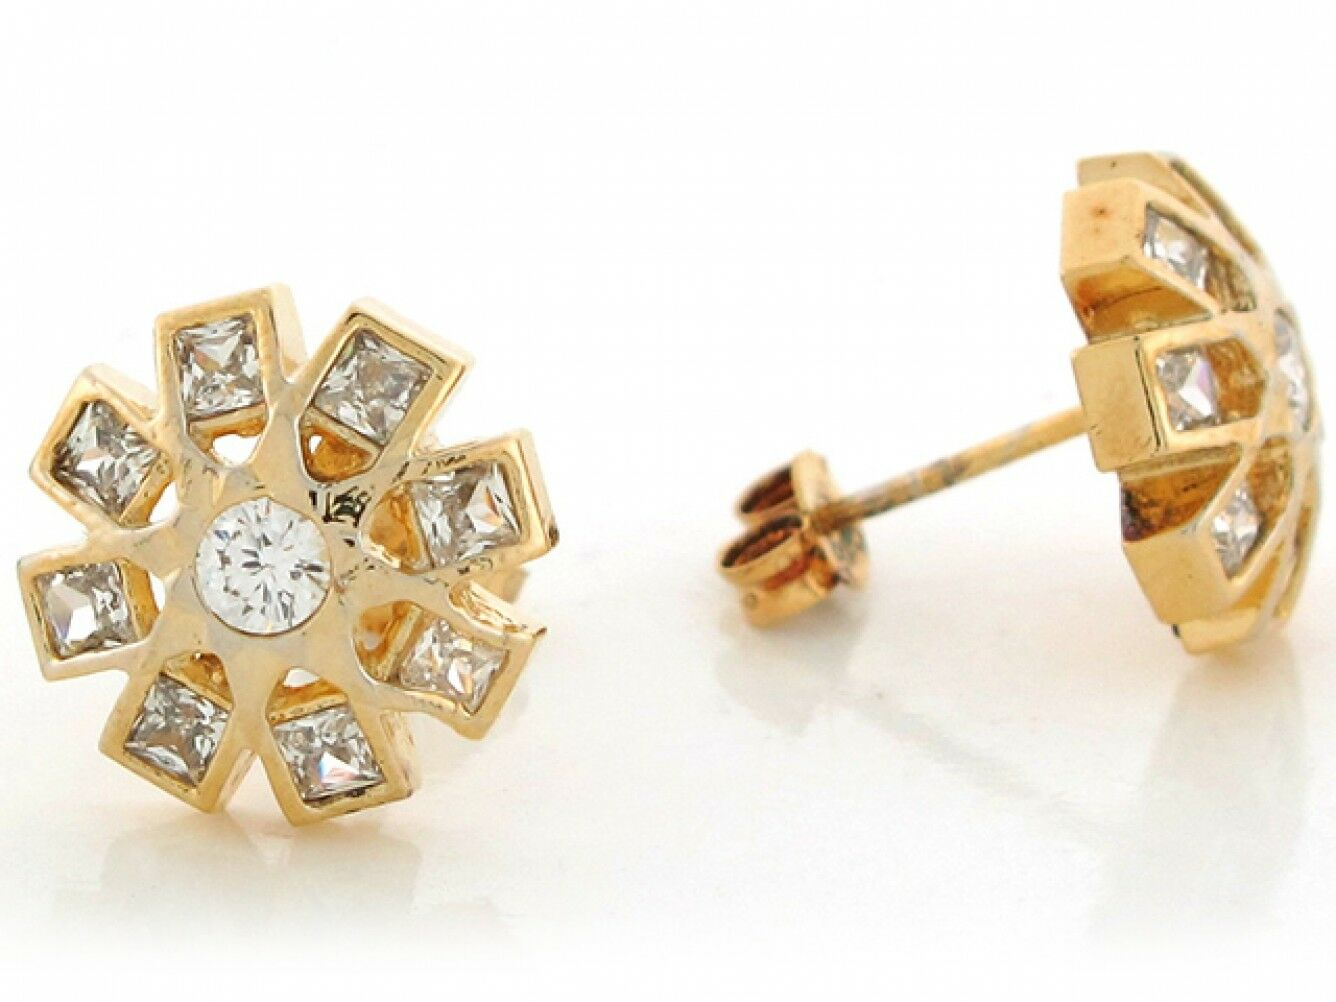 10k or 14k Real Yellow gold White CZ Cluster Floral Design 1.27cm Post Earrings